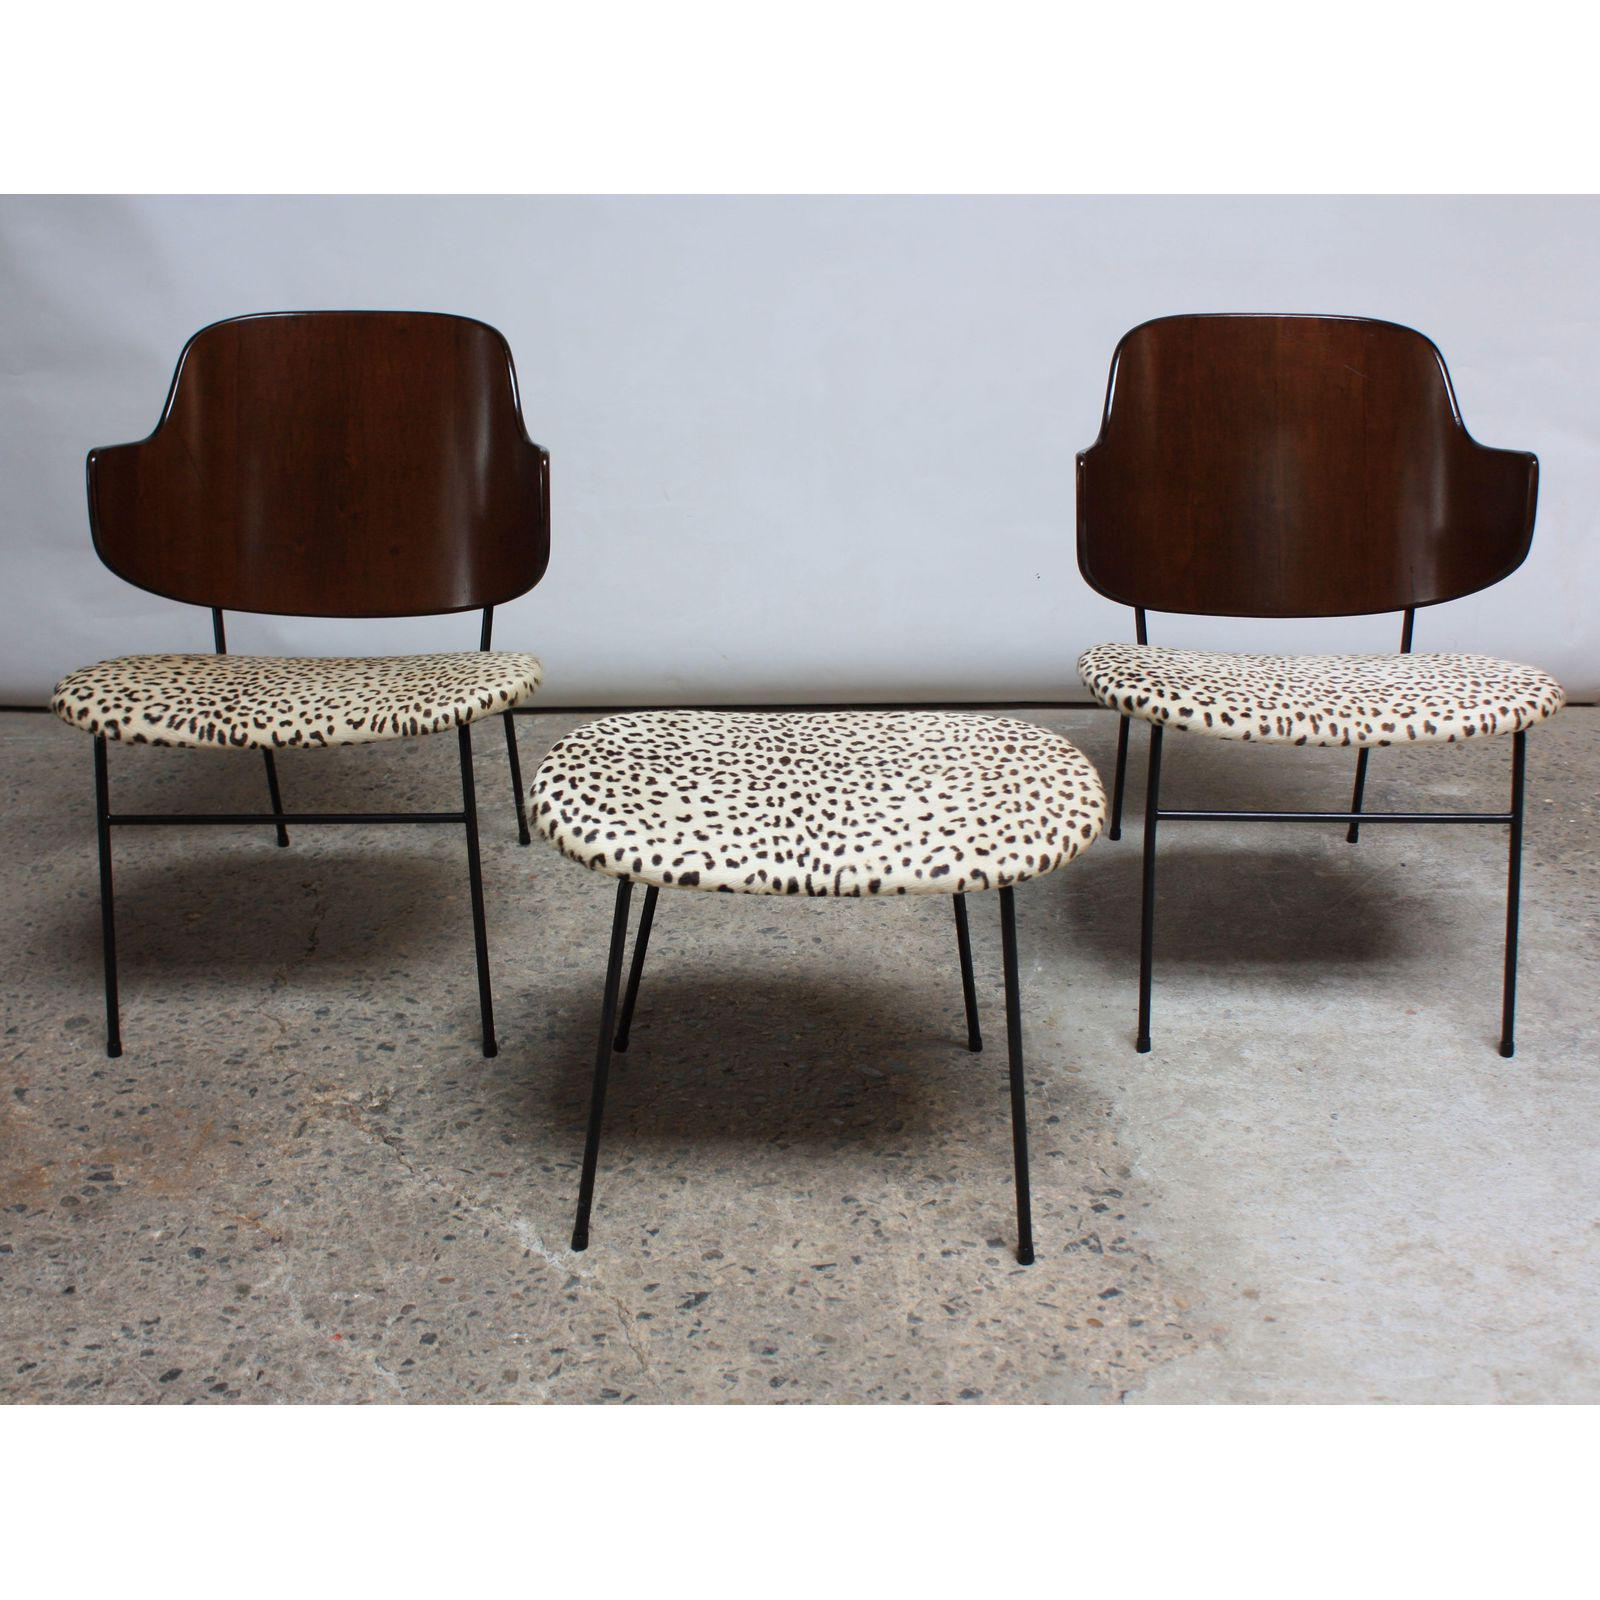 Rare IB Kofod Larsen Penguin Chairs And Ottoman In Leopard Print Appaloosa  Hair   Image 3